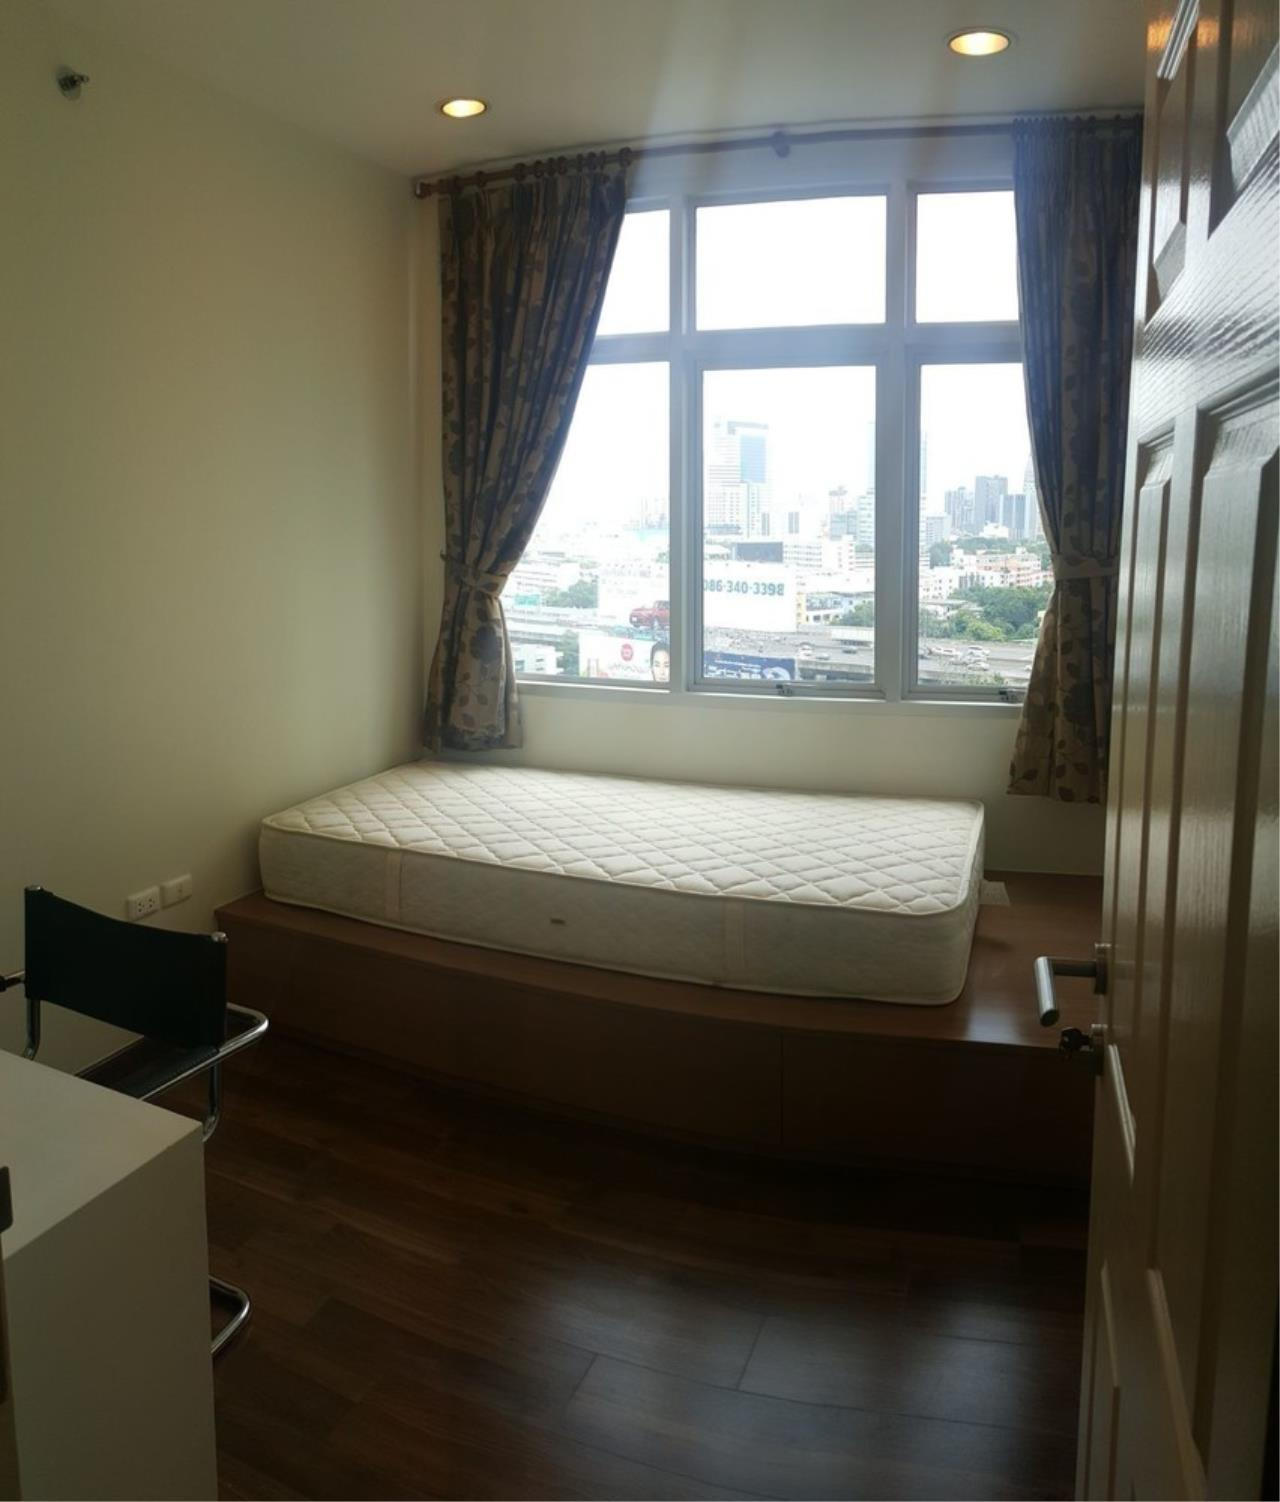 Agent - Thitiporn Sriboola Agency's Chewathai Ratchaprarop, high rise condo for rent. Near Victory Monument 900 m / 4 minutes by car 2